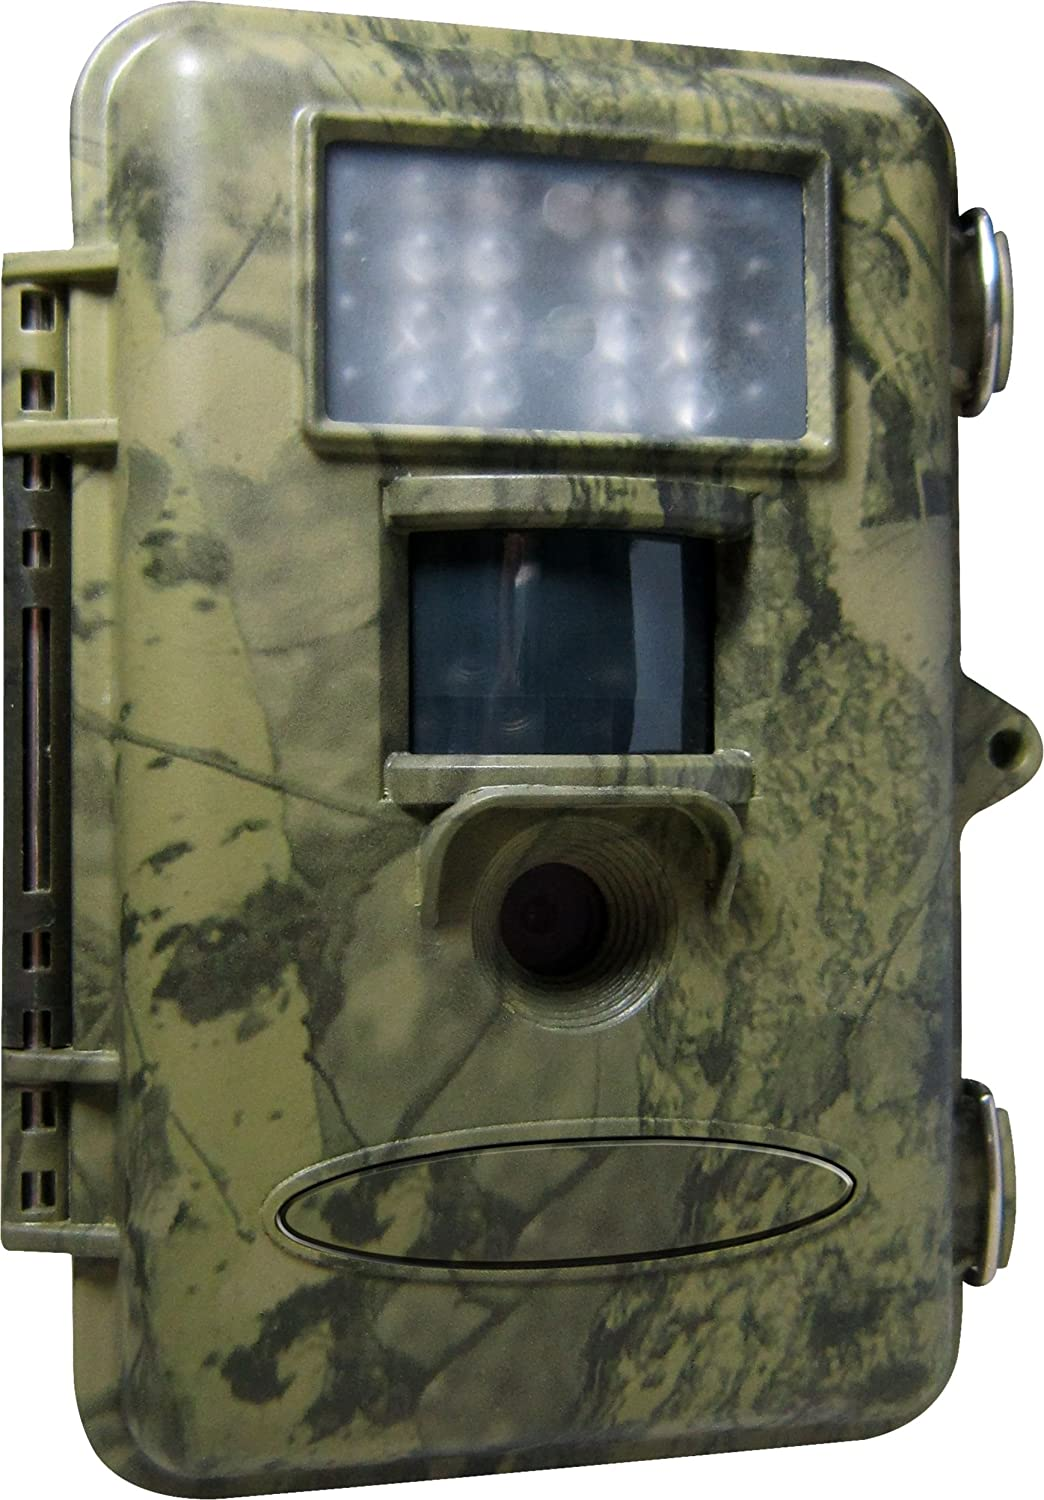 ScoutGuard/BolyGuard SG560-8M Long Range 8MP Trail/Game Hunting Scouting Camera with White Box : Sports & Outdoors